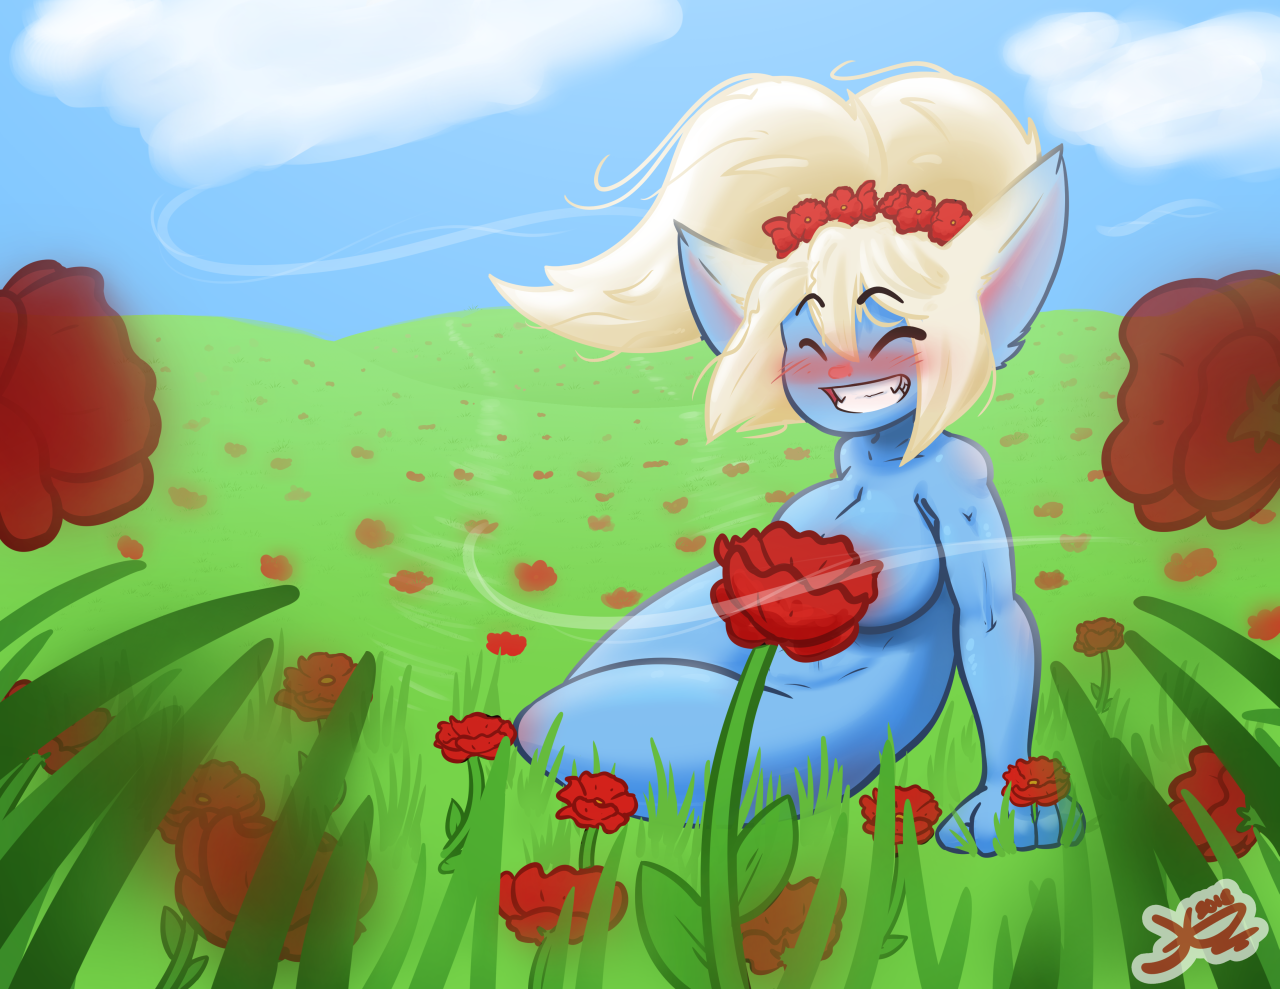 Yordle Pinup Calendar May 2019 By Daclusia On Newgrounds Yordles are possibly the oldest sentient race in runeterra still existing. yordle pinup calendar may 2019 by